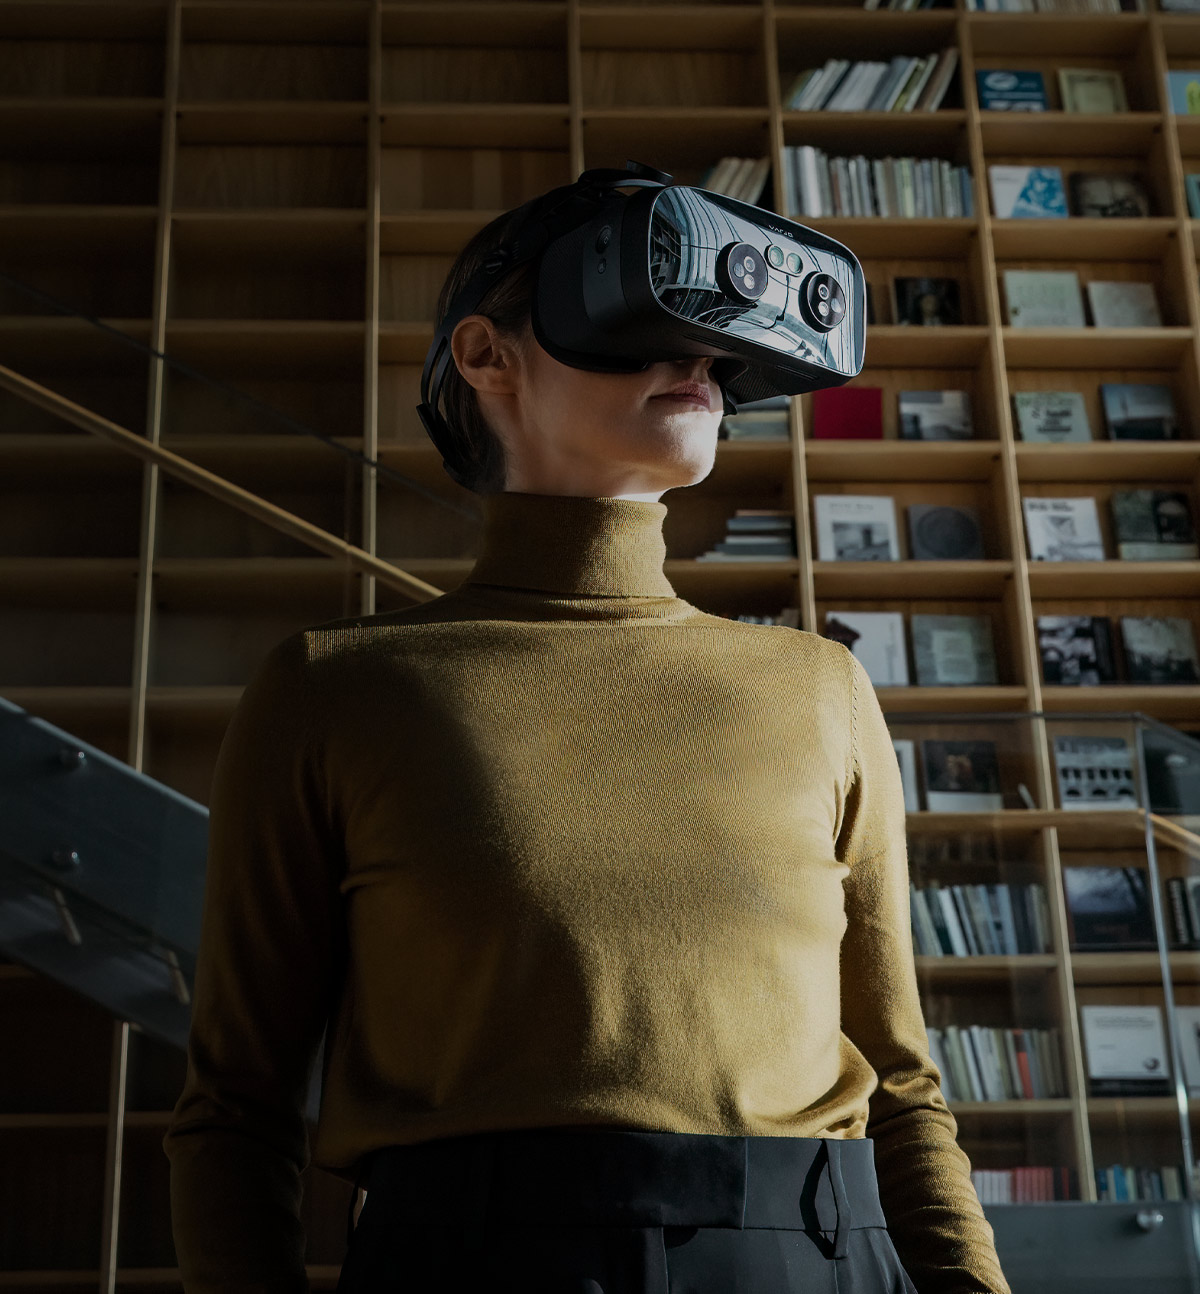 VR for research – Find out how Varjo headsets allow you to conduct high-level academic, clinical and commercial studies in the most immersive XR/AR/VR environments.